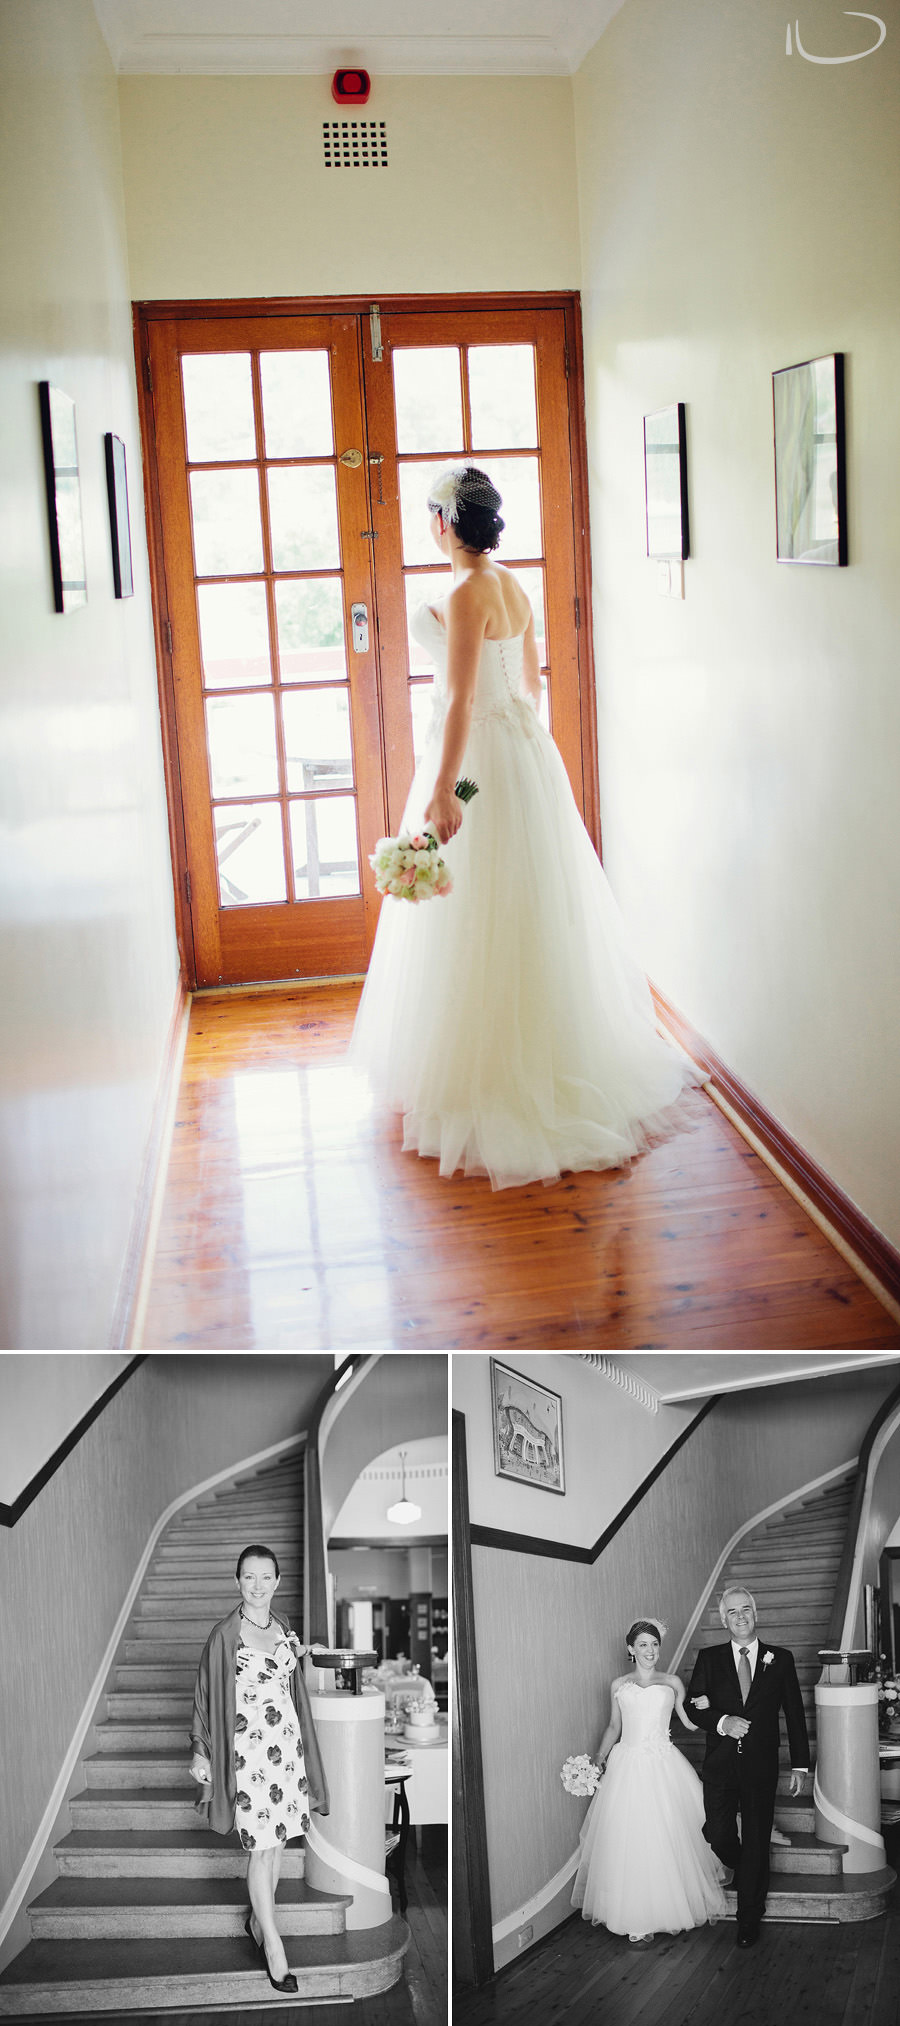 Bathurst Wedding Photography: Bride walking down the stairs